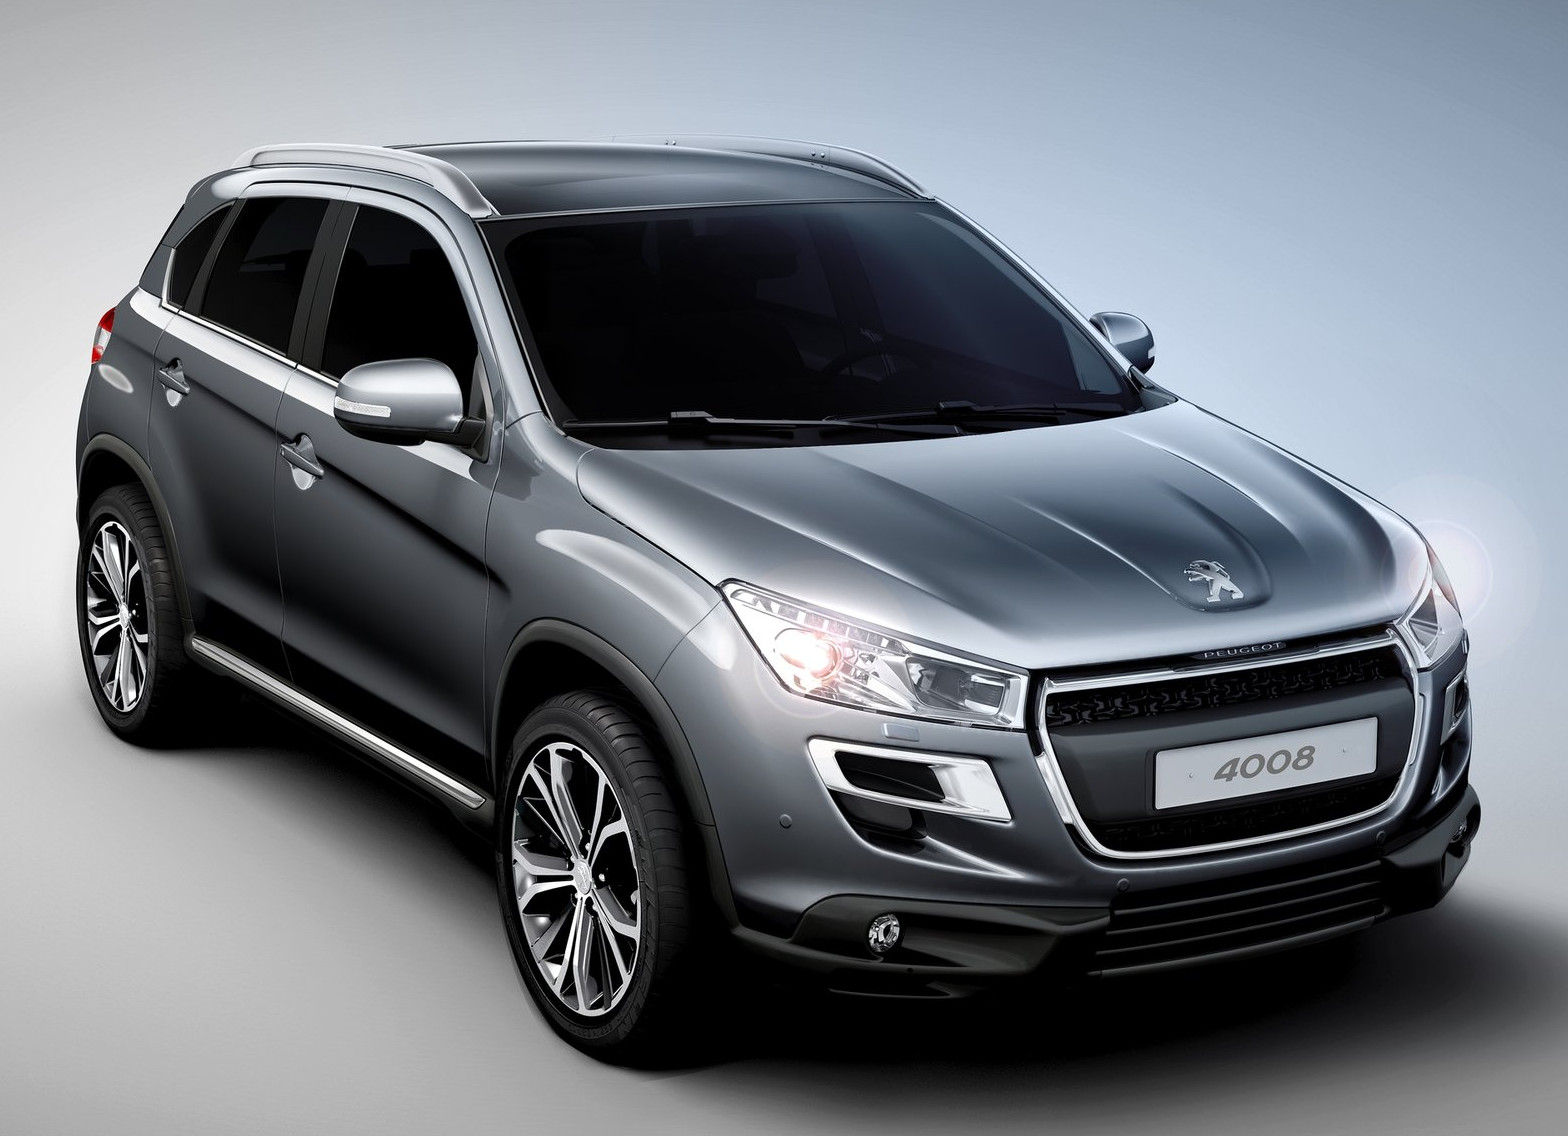 2012 peugeot 4008 crossover revealed to debut in geneva. Black Bedroom Furniture Sets. Home Design Ideas